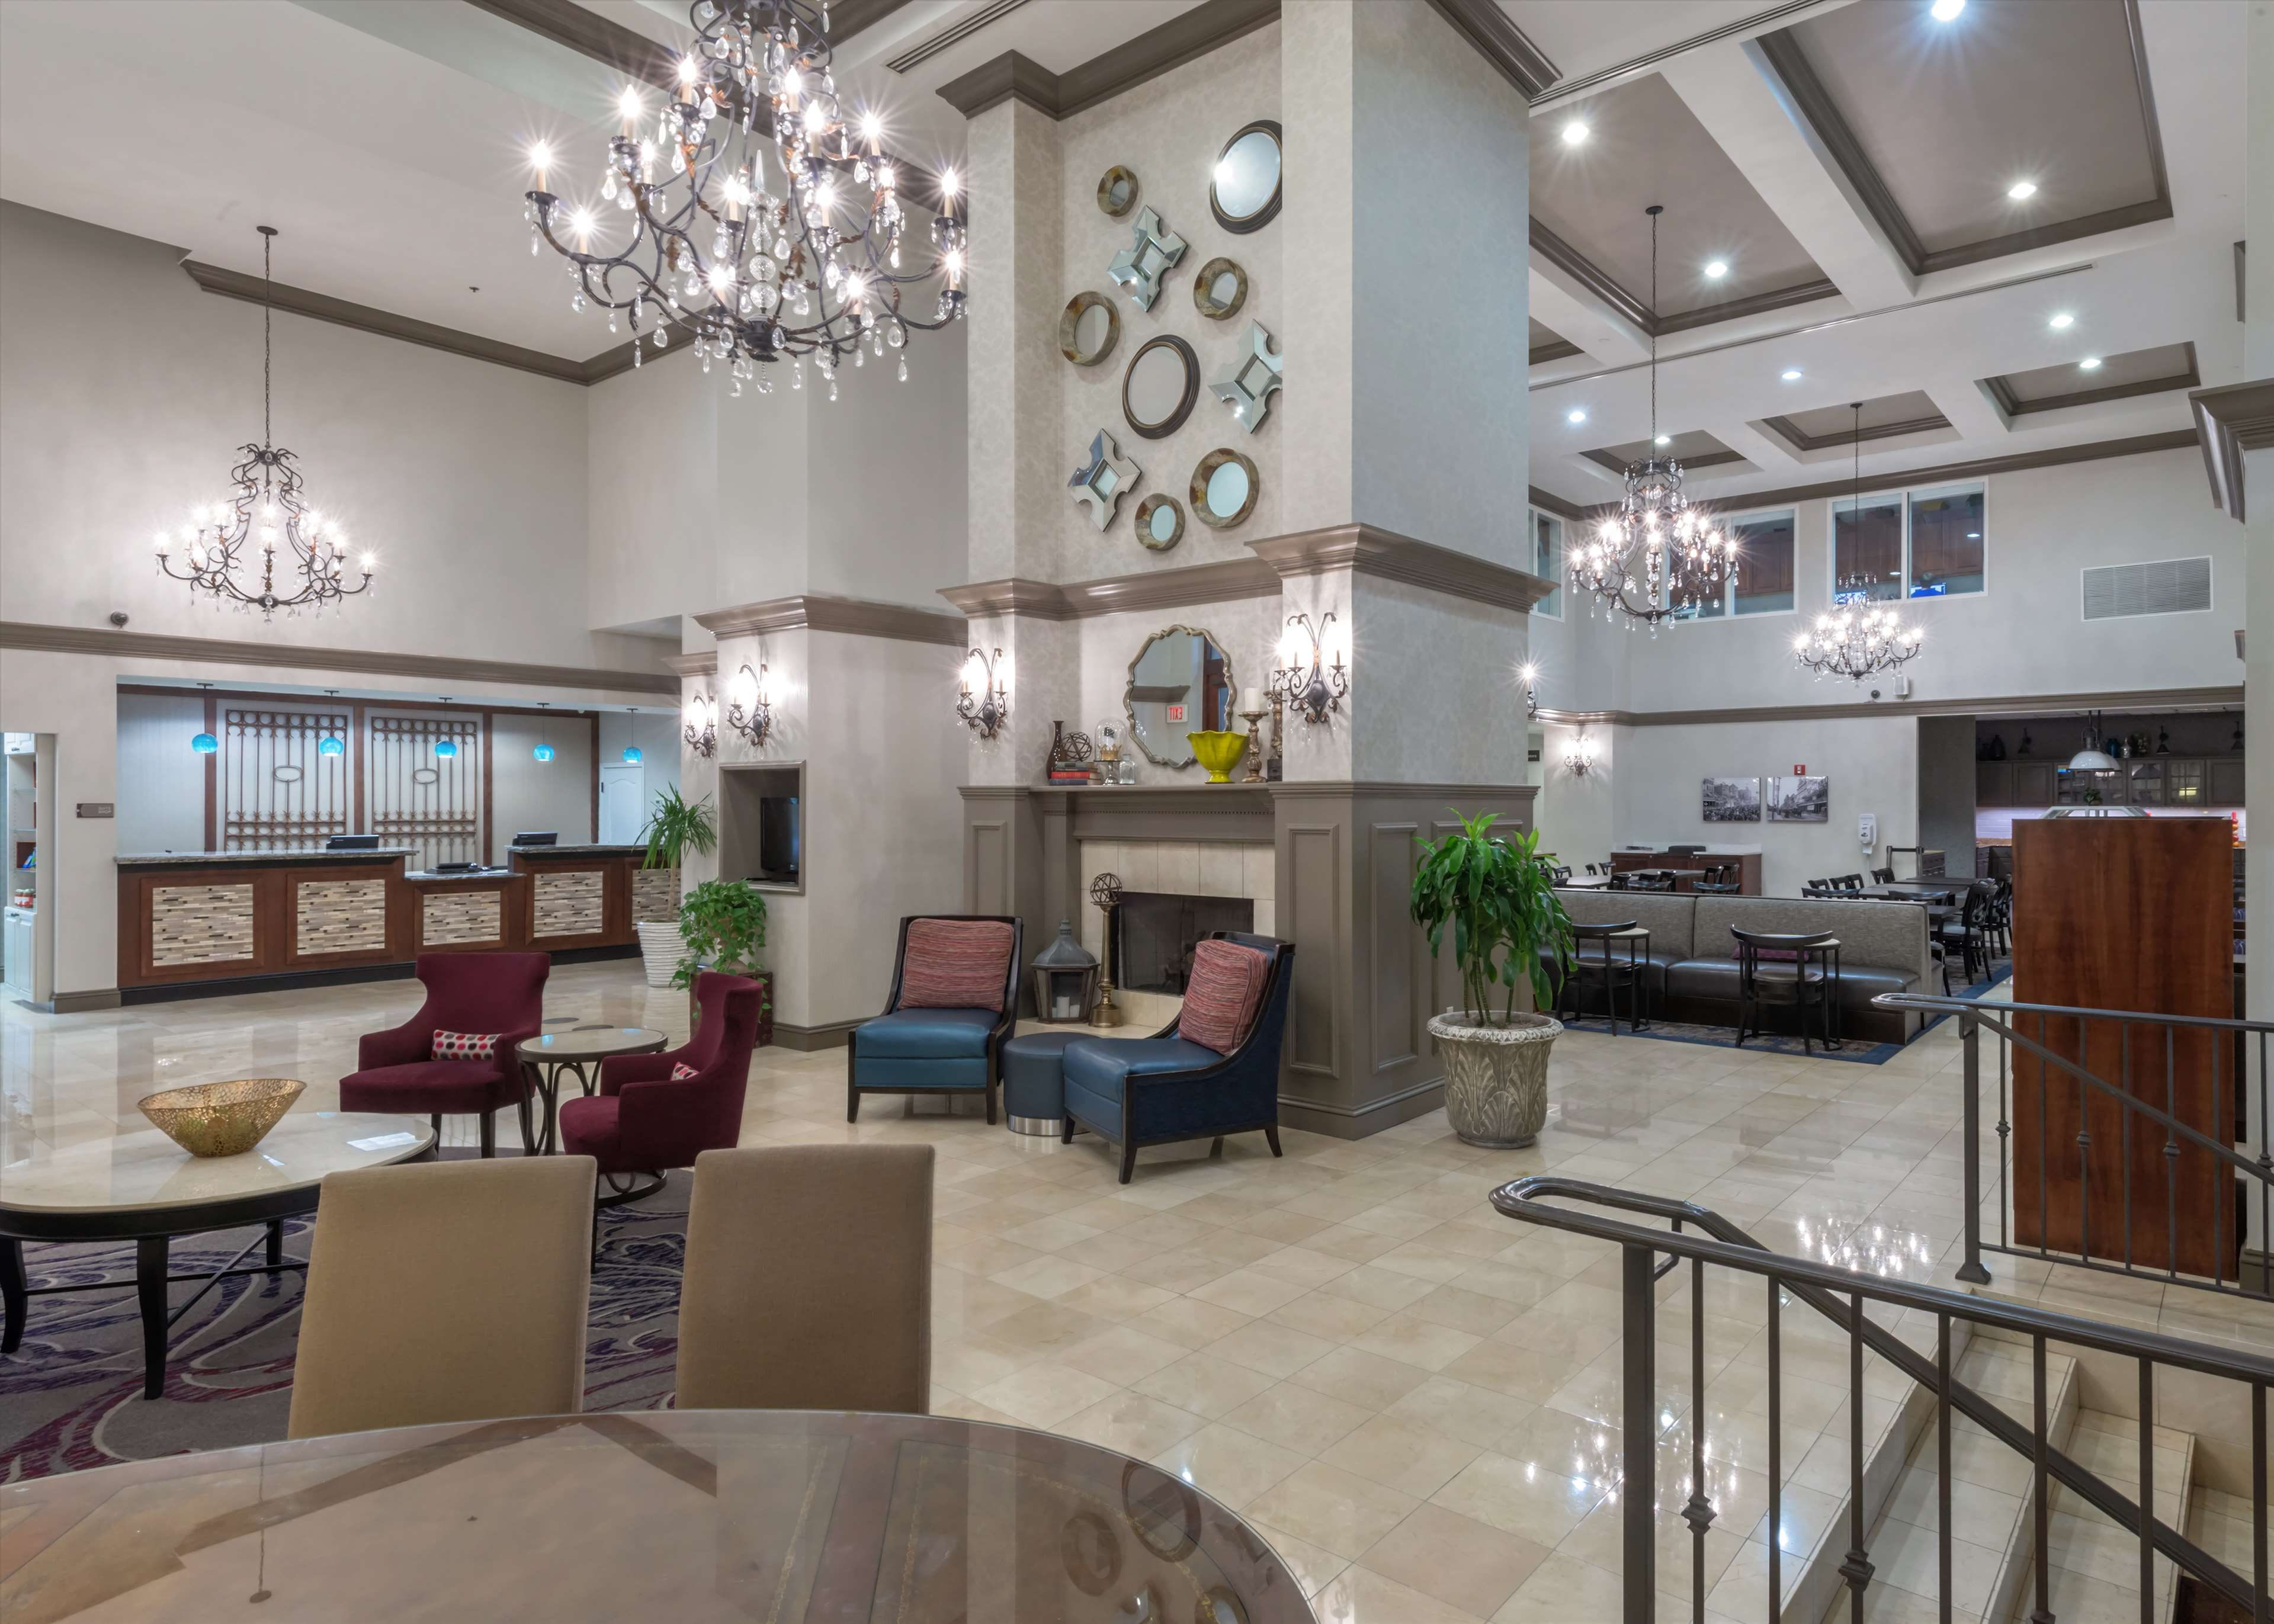 Homewood Suites by Hilton New Orleans image 3